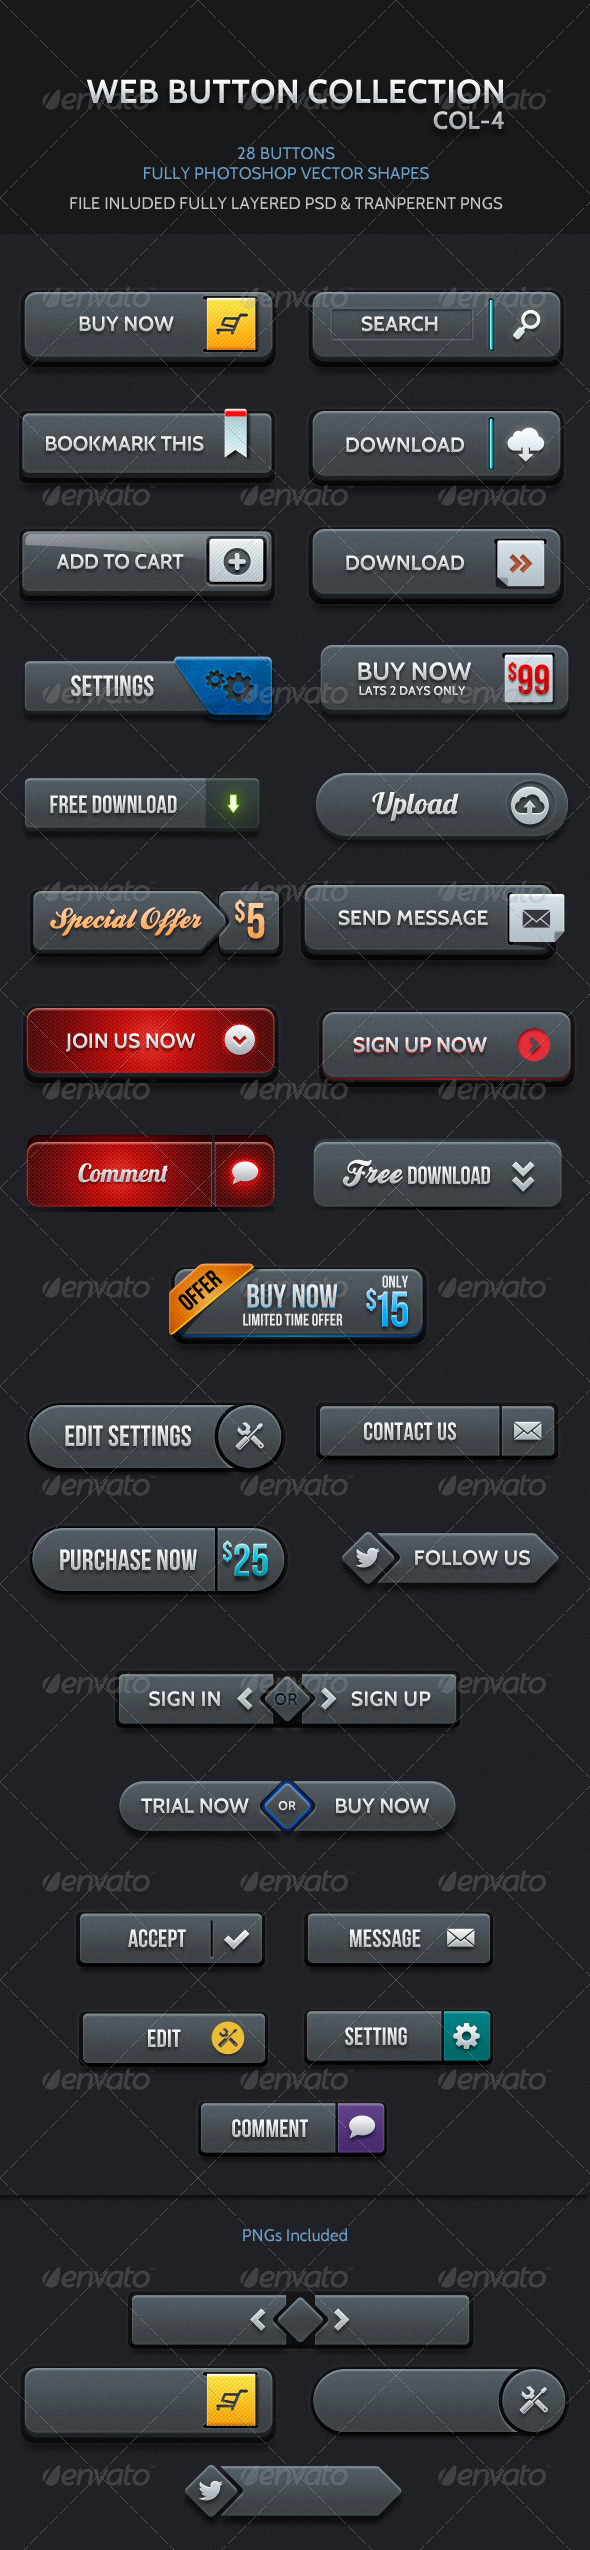 GraphicRiver Web Buttons Col 4 4764299